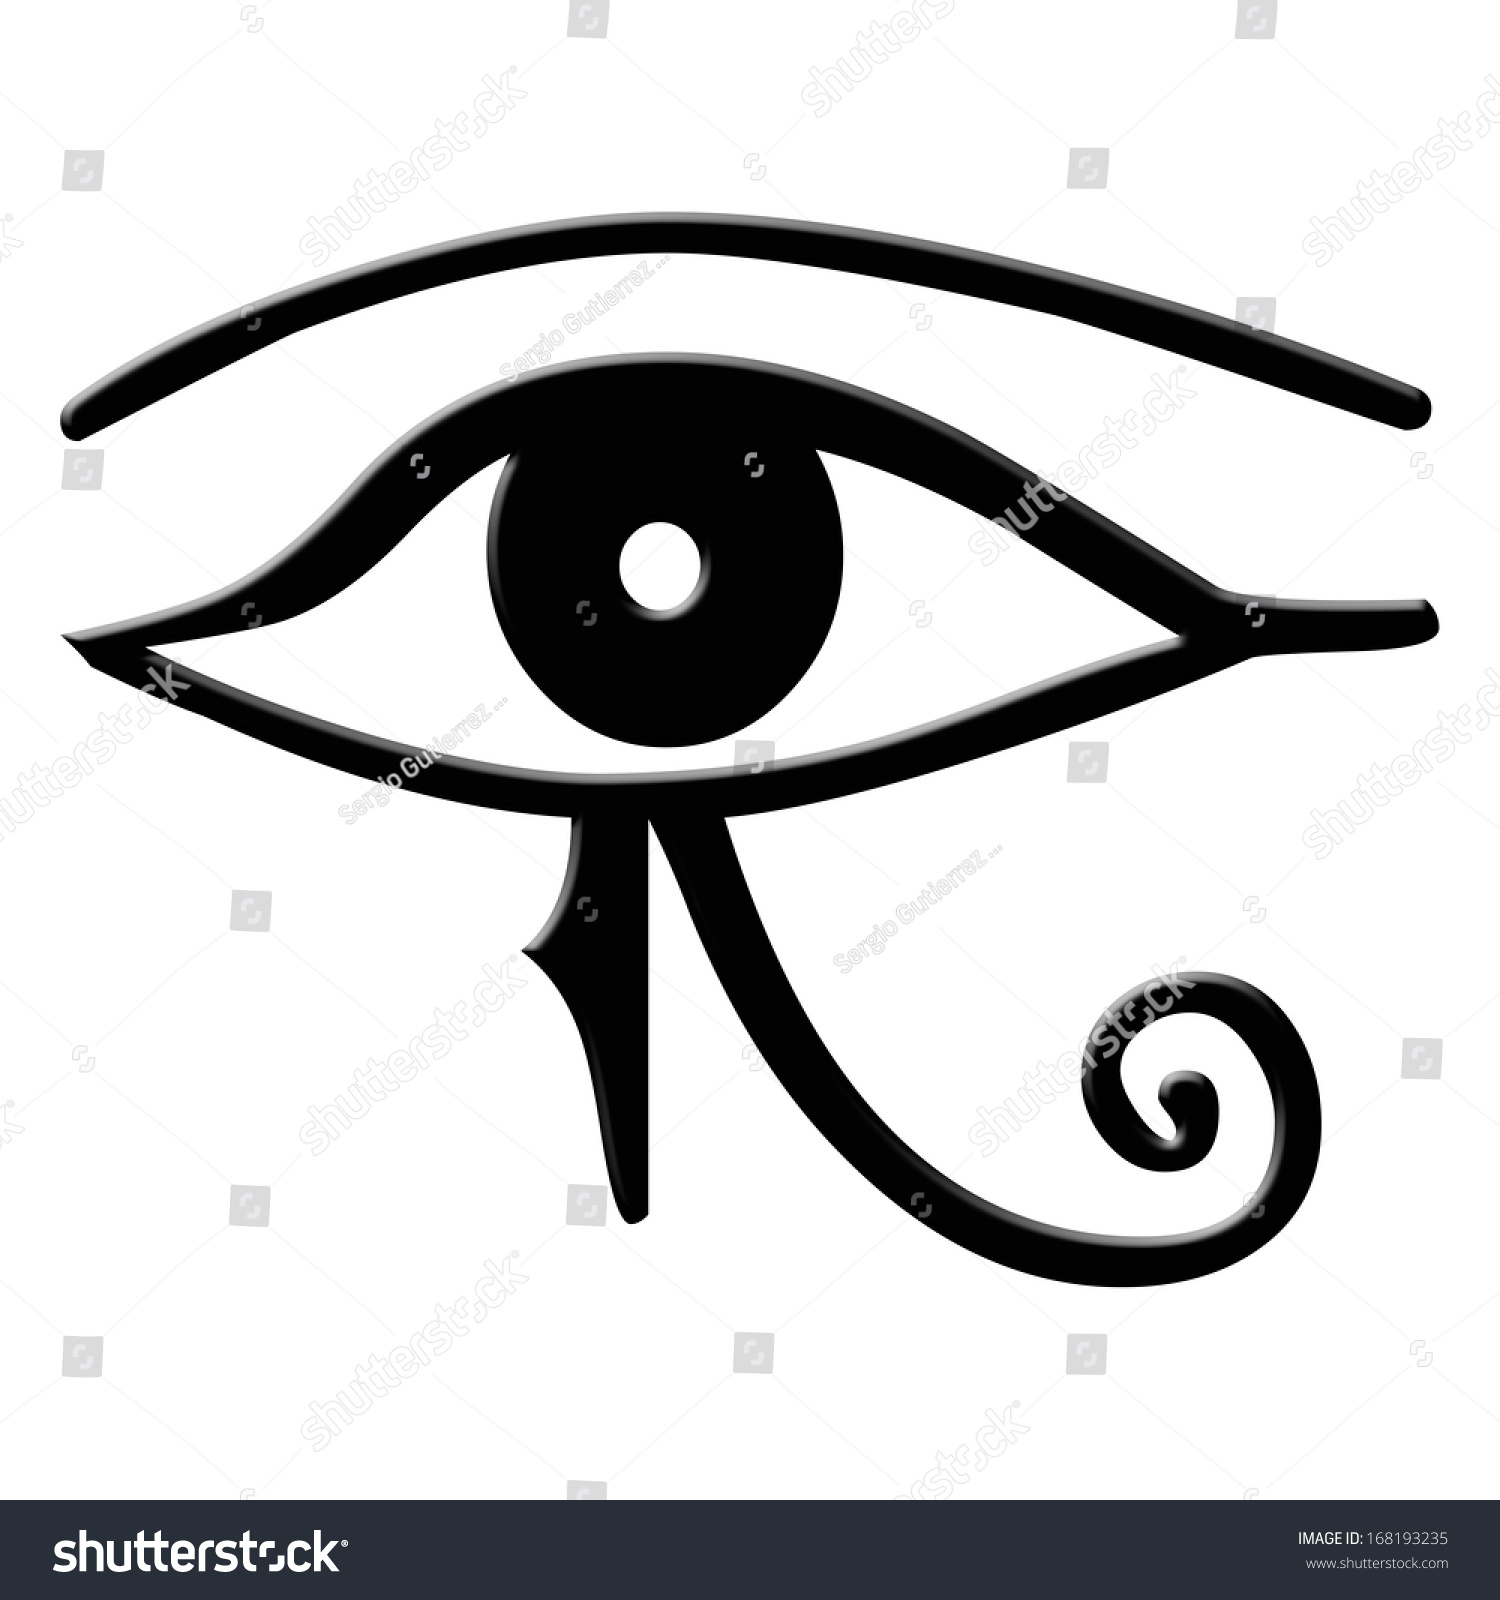 Egyptian Symbol for Power - Bing images